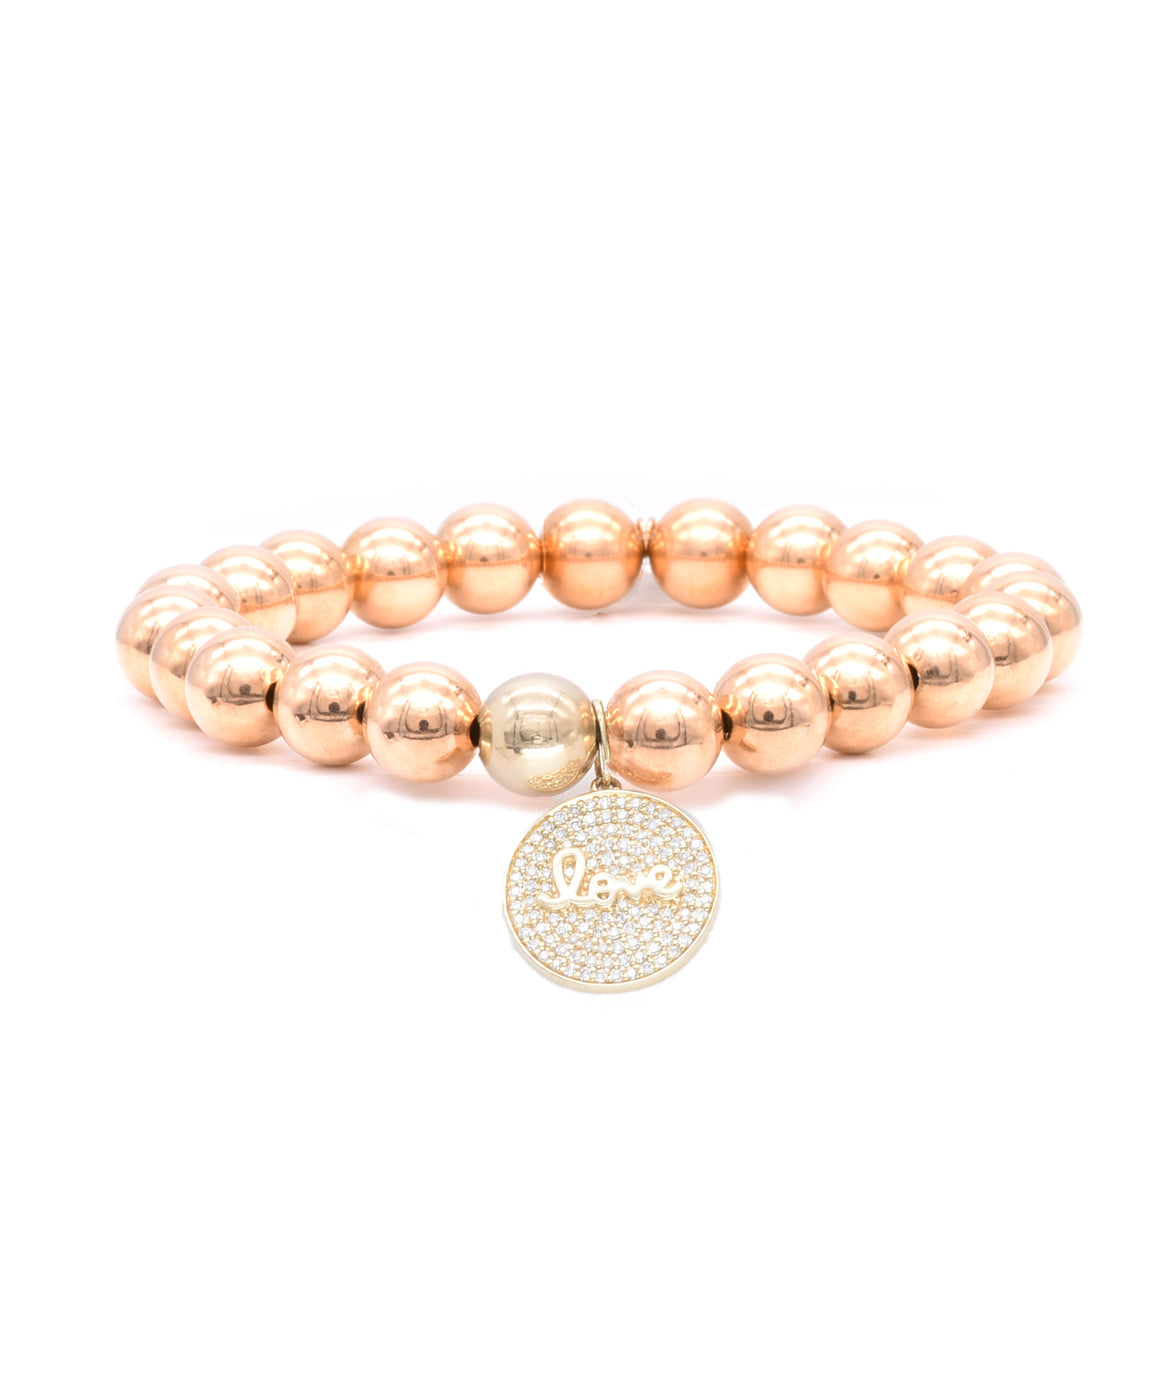 Polished Gold Bead Bracelet with Script Love Charm - Lesley Ann Jewels